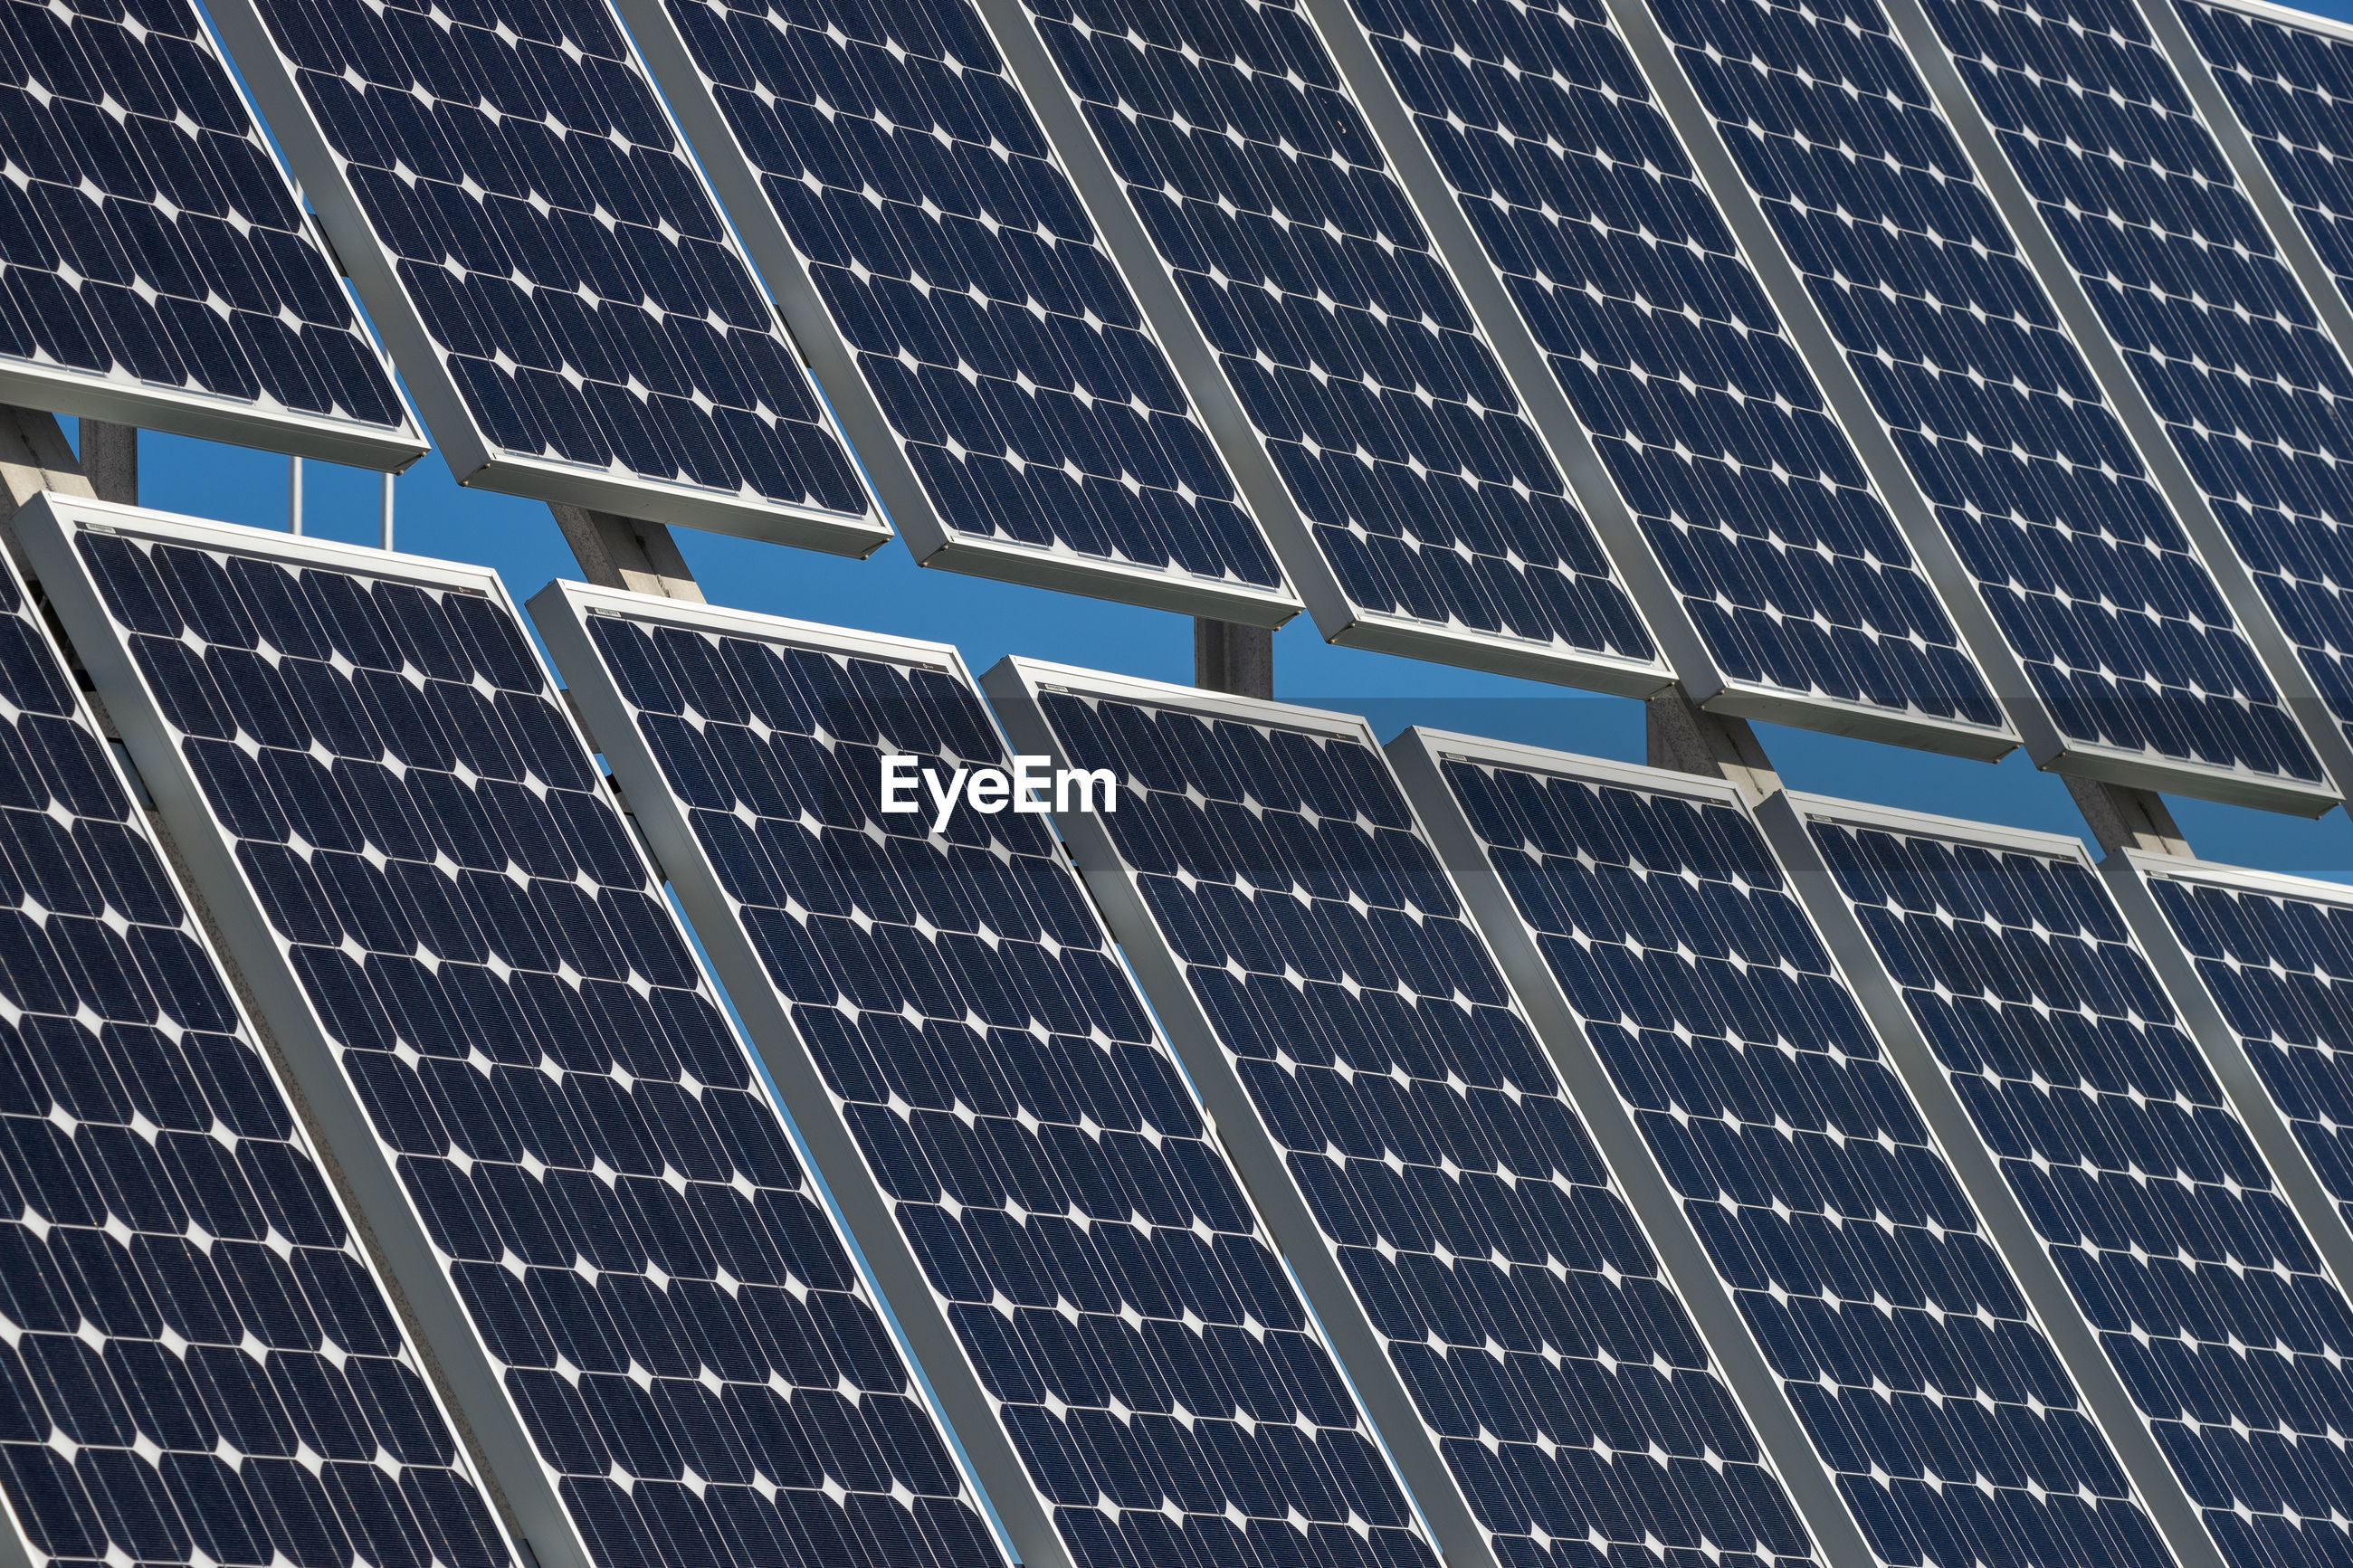 Solar panels with blue sky background